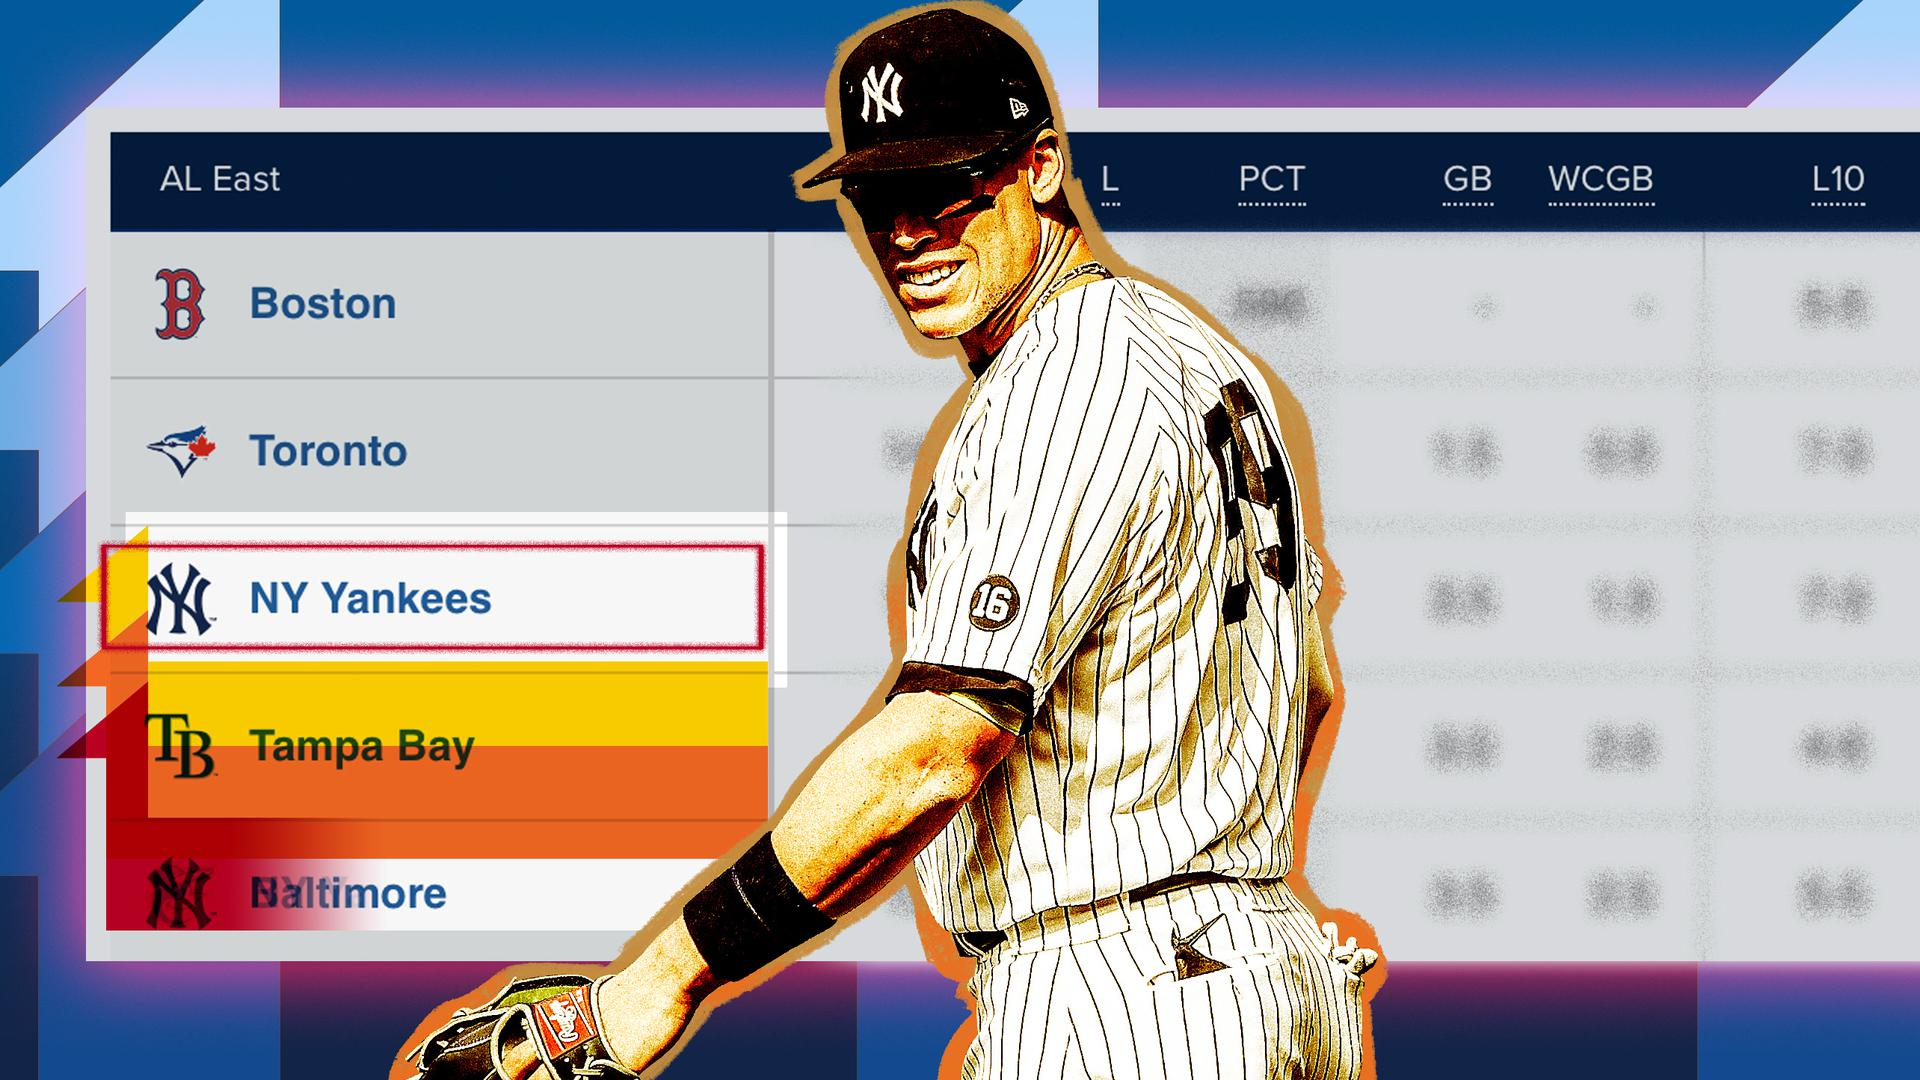 Yanks to first